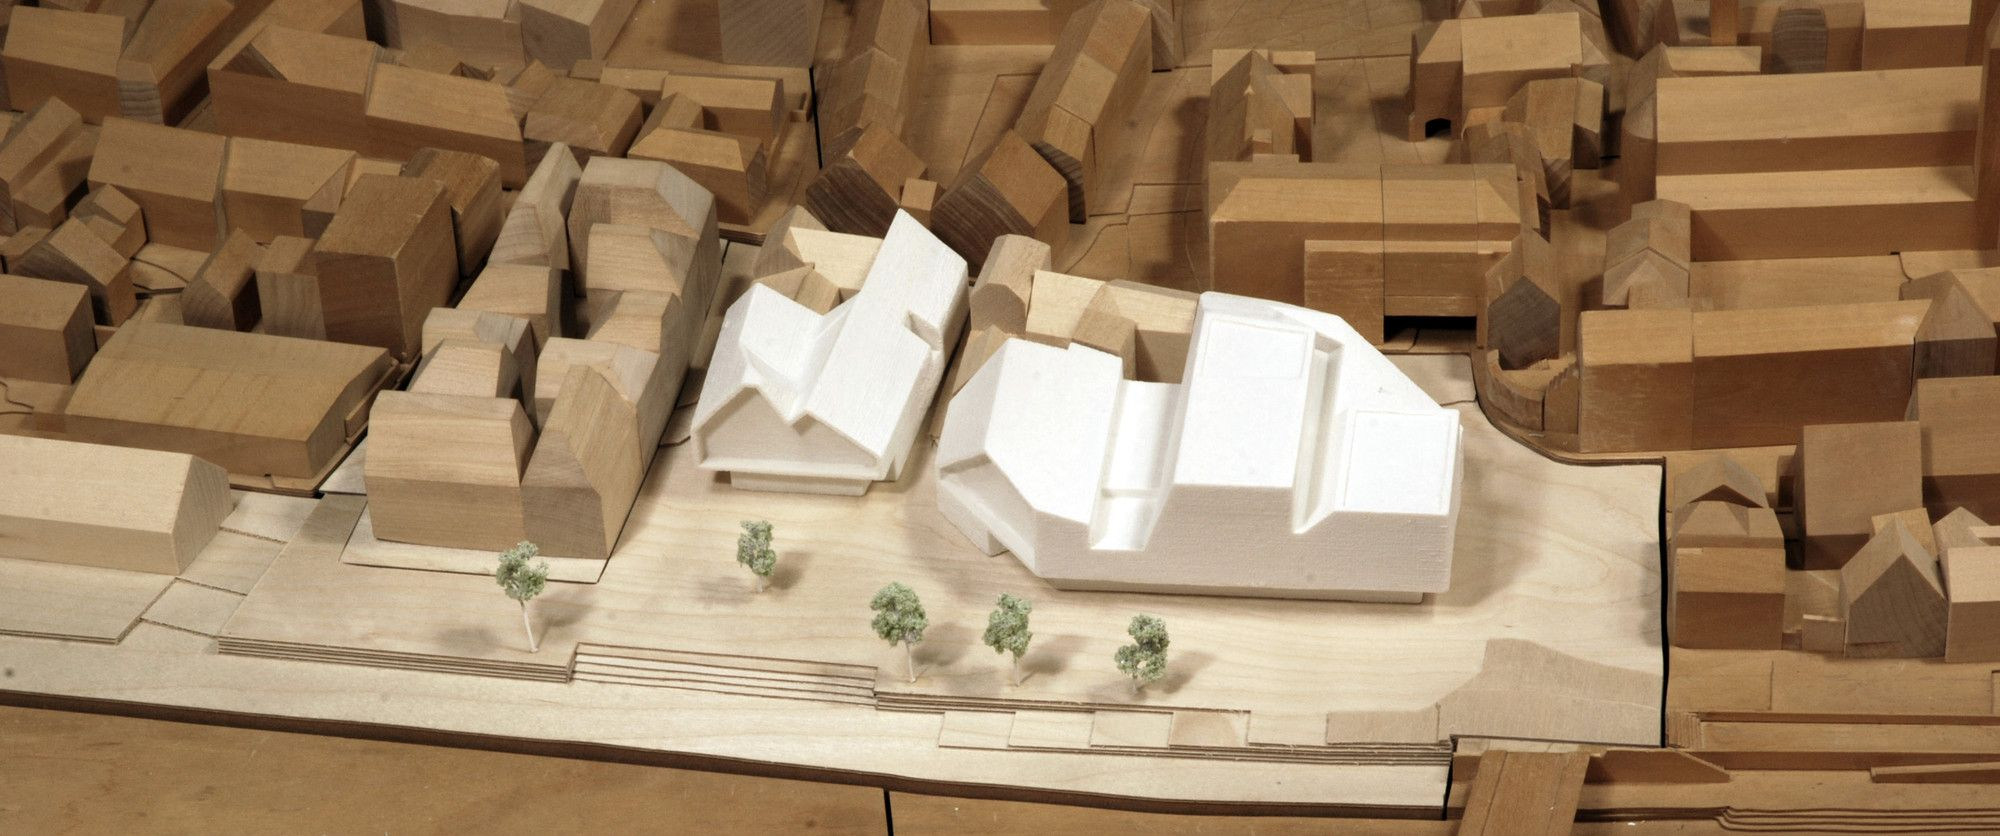 Gallery of Museum of Bavarian History Competition Entry / Simon Takasaki Architecture + Research Studio - 3